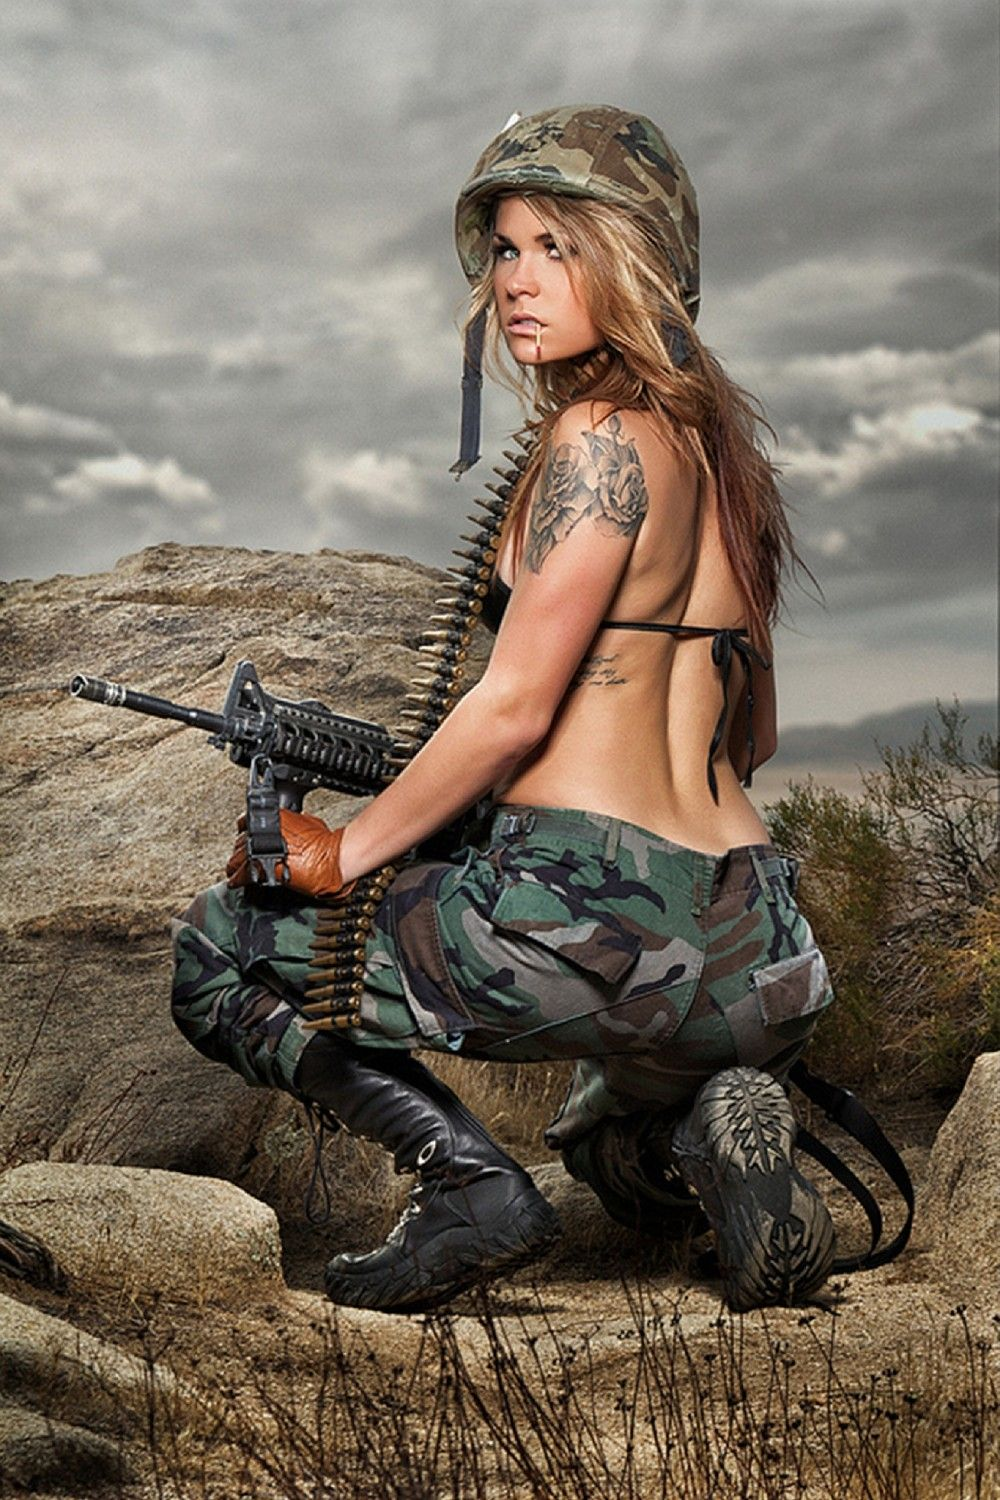 off-movies-hot-military-girls-nudist-sex